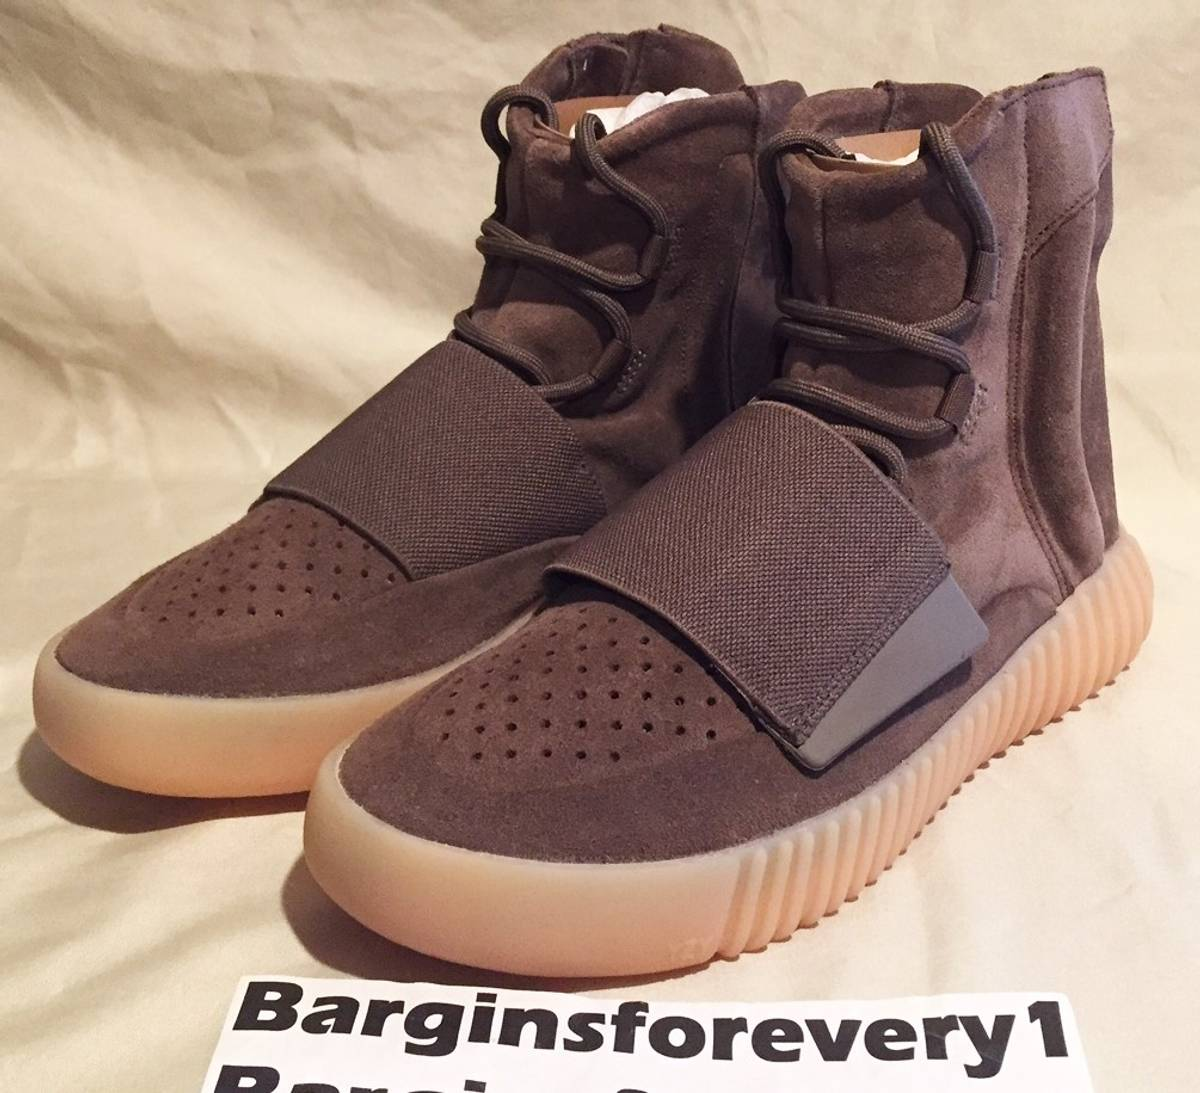 e3b71beb60c7 Adidas Kanye West Adidas Yeezy Boost 750 - Size 6.5 - Chocolate - Light  Brown Gum - BY2456 - Kanye Size 6.5 - Hi-Top Sneakers for Sale - Grailed